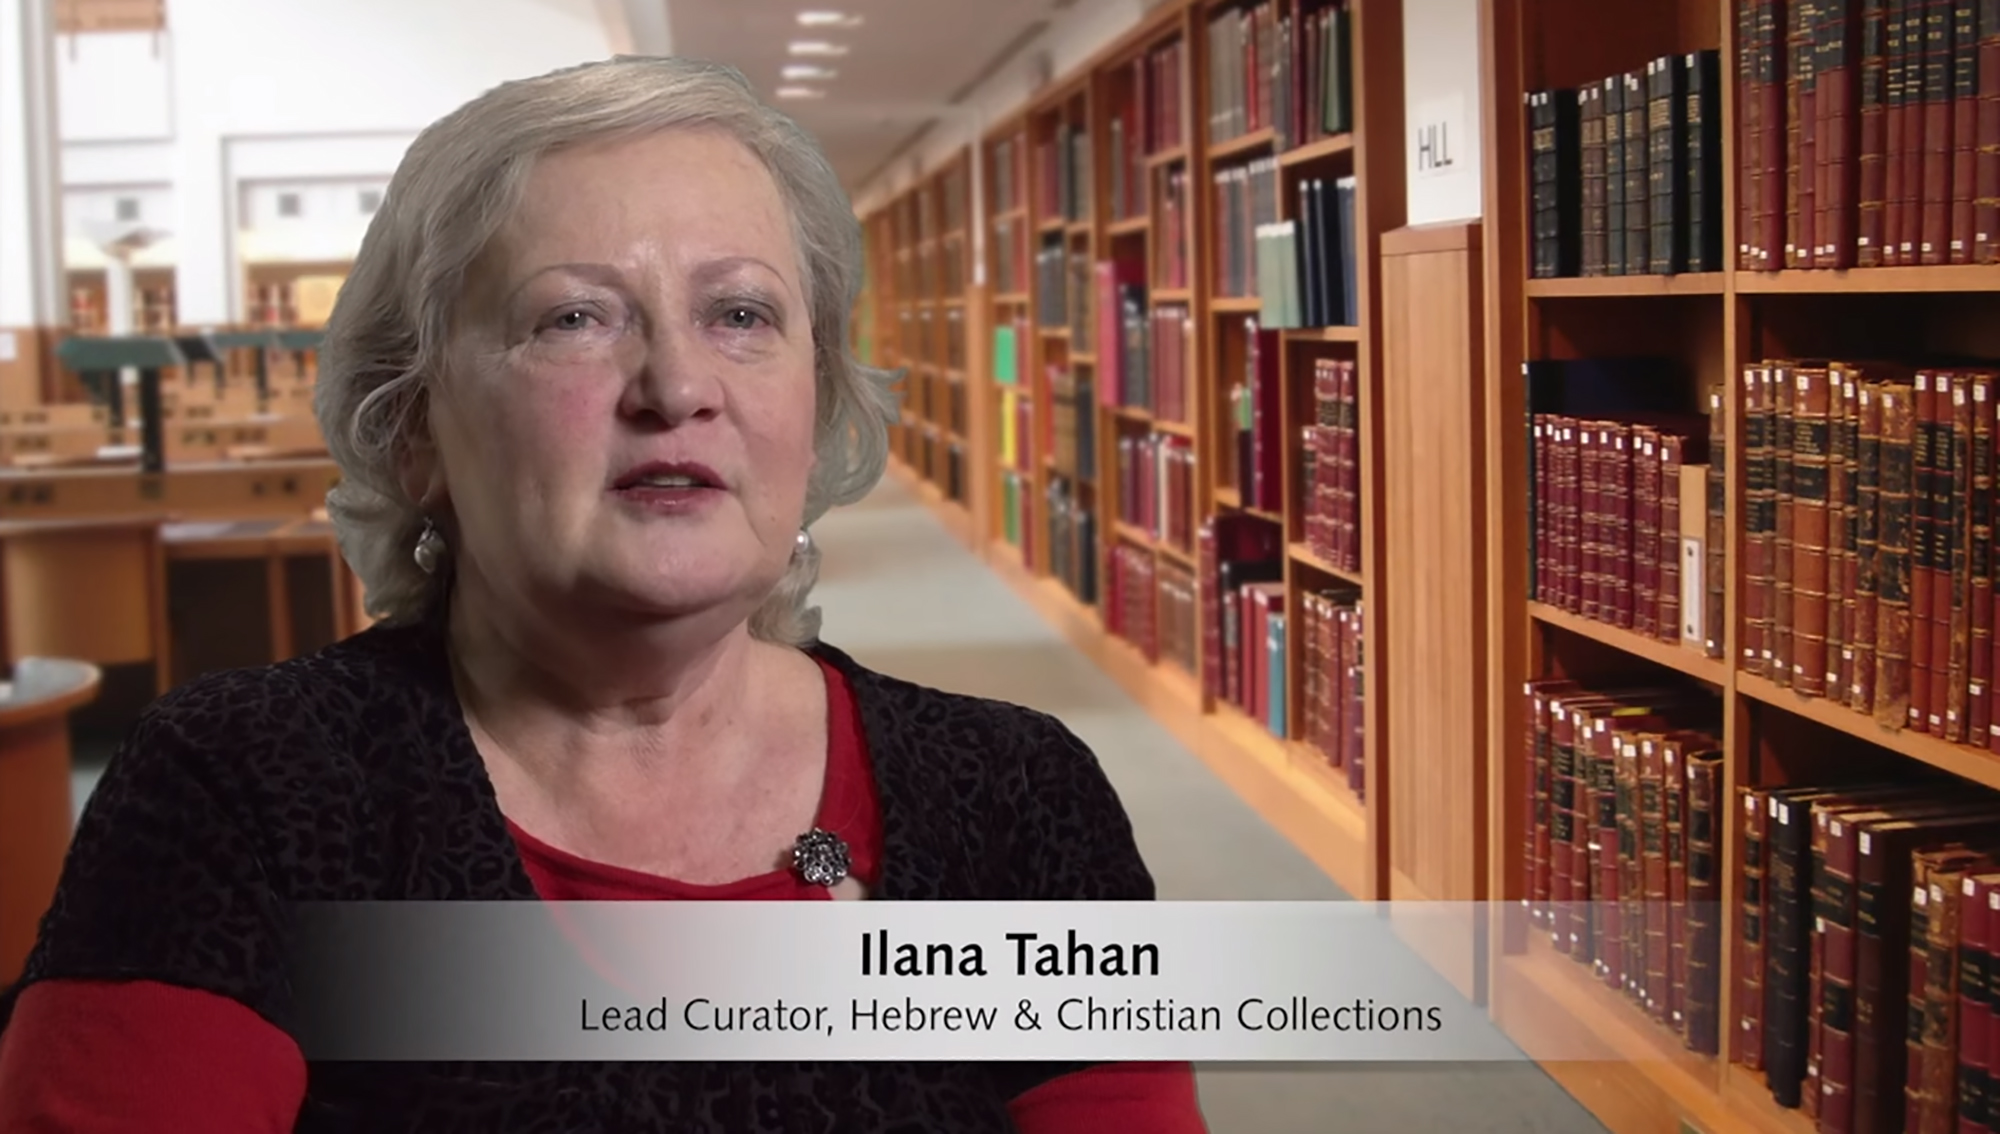 Watch this introduction to the Hebrew Manuscripts Digitisation Project, funded by The Polonsky Foundation, to digitise over 1,250 manuscripts from the British Library magnificent collection of Hebrew manuscripts.